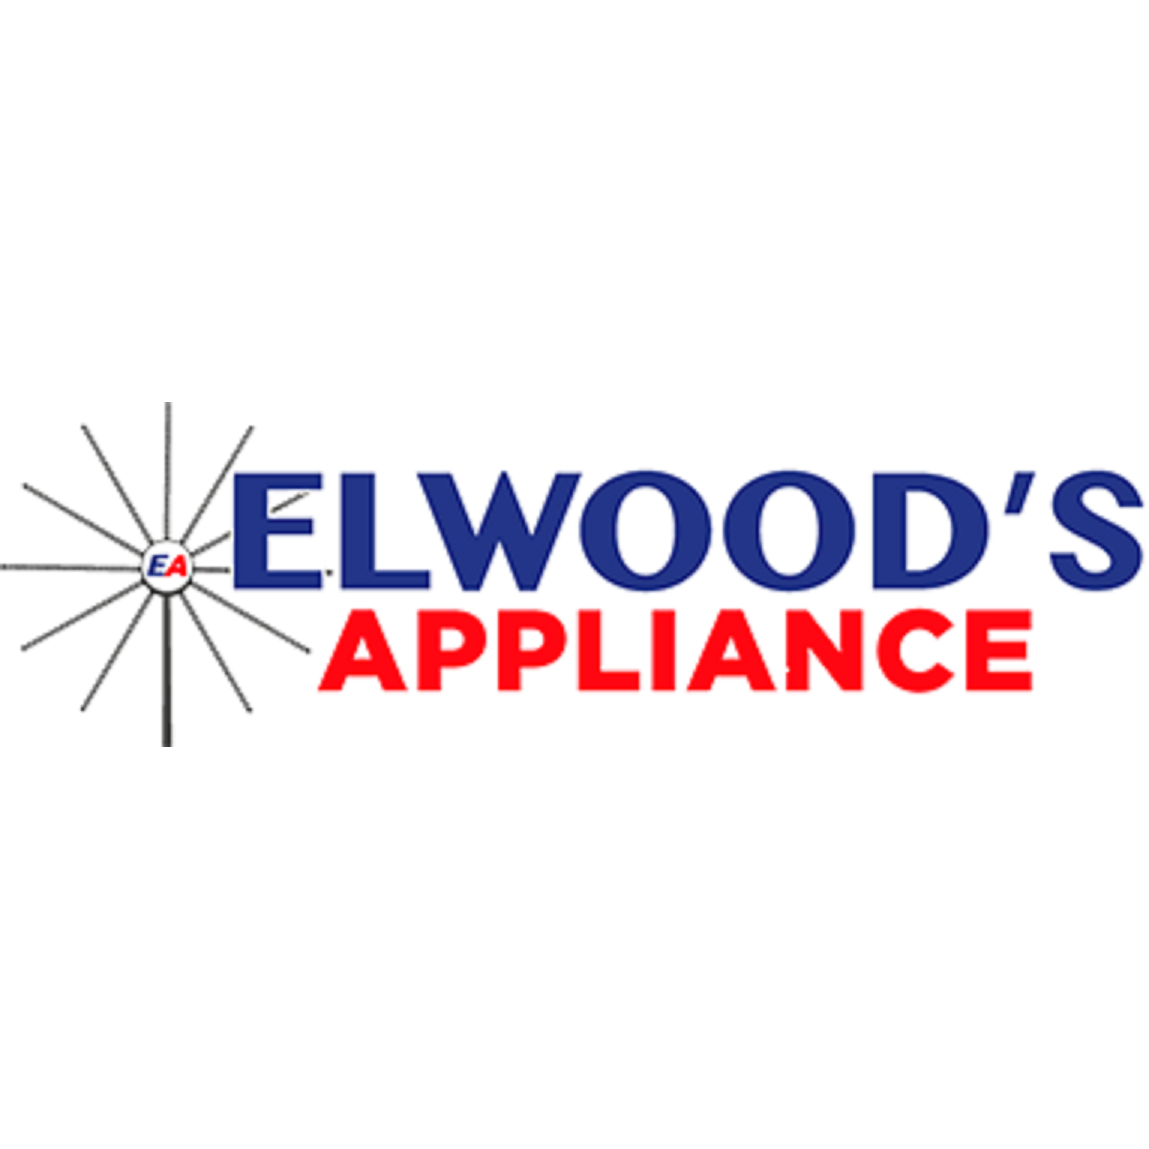 Elwood's Appliance, Inc. - Fort Wayne, IN - Appliance Stores